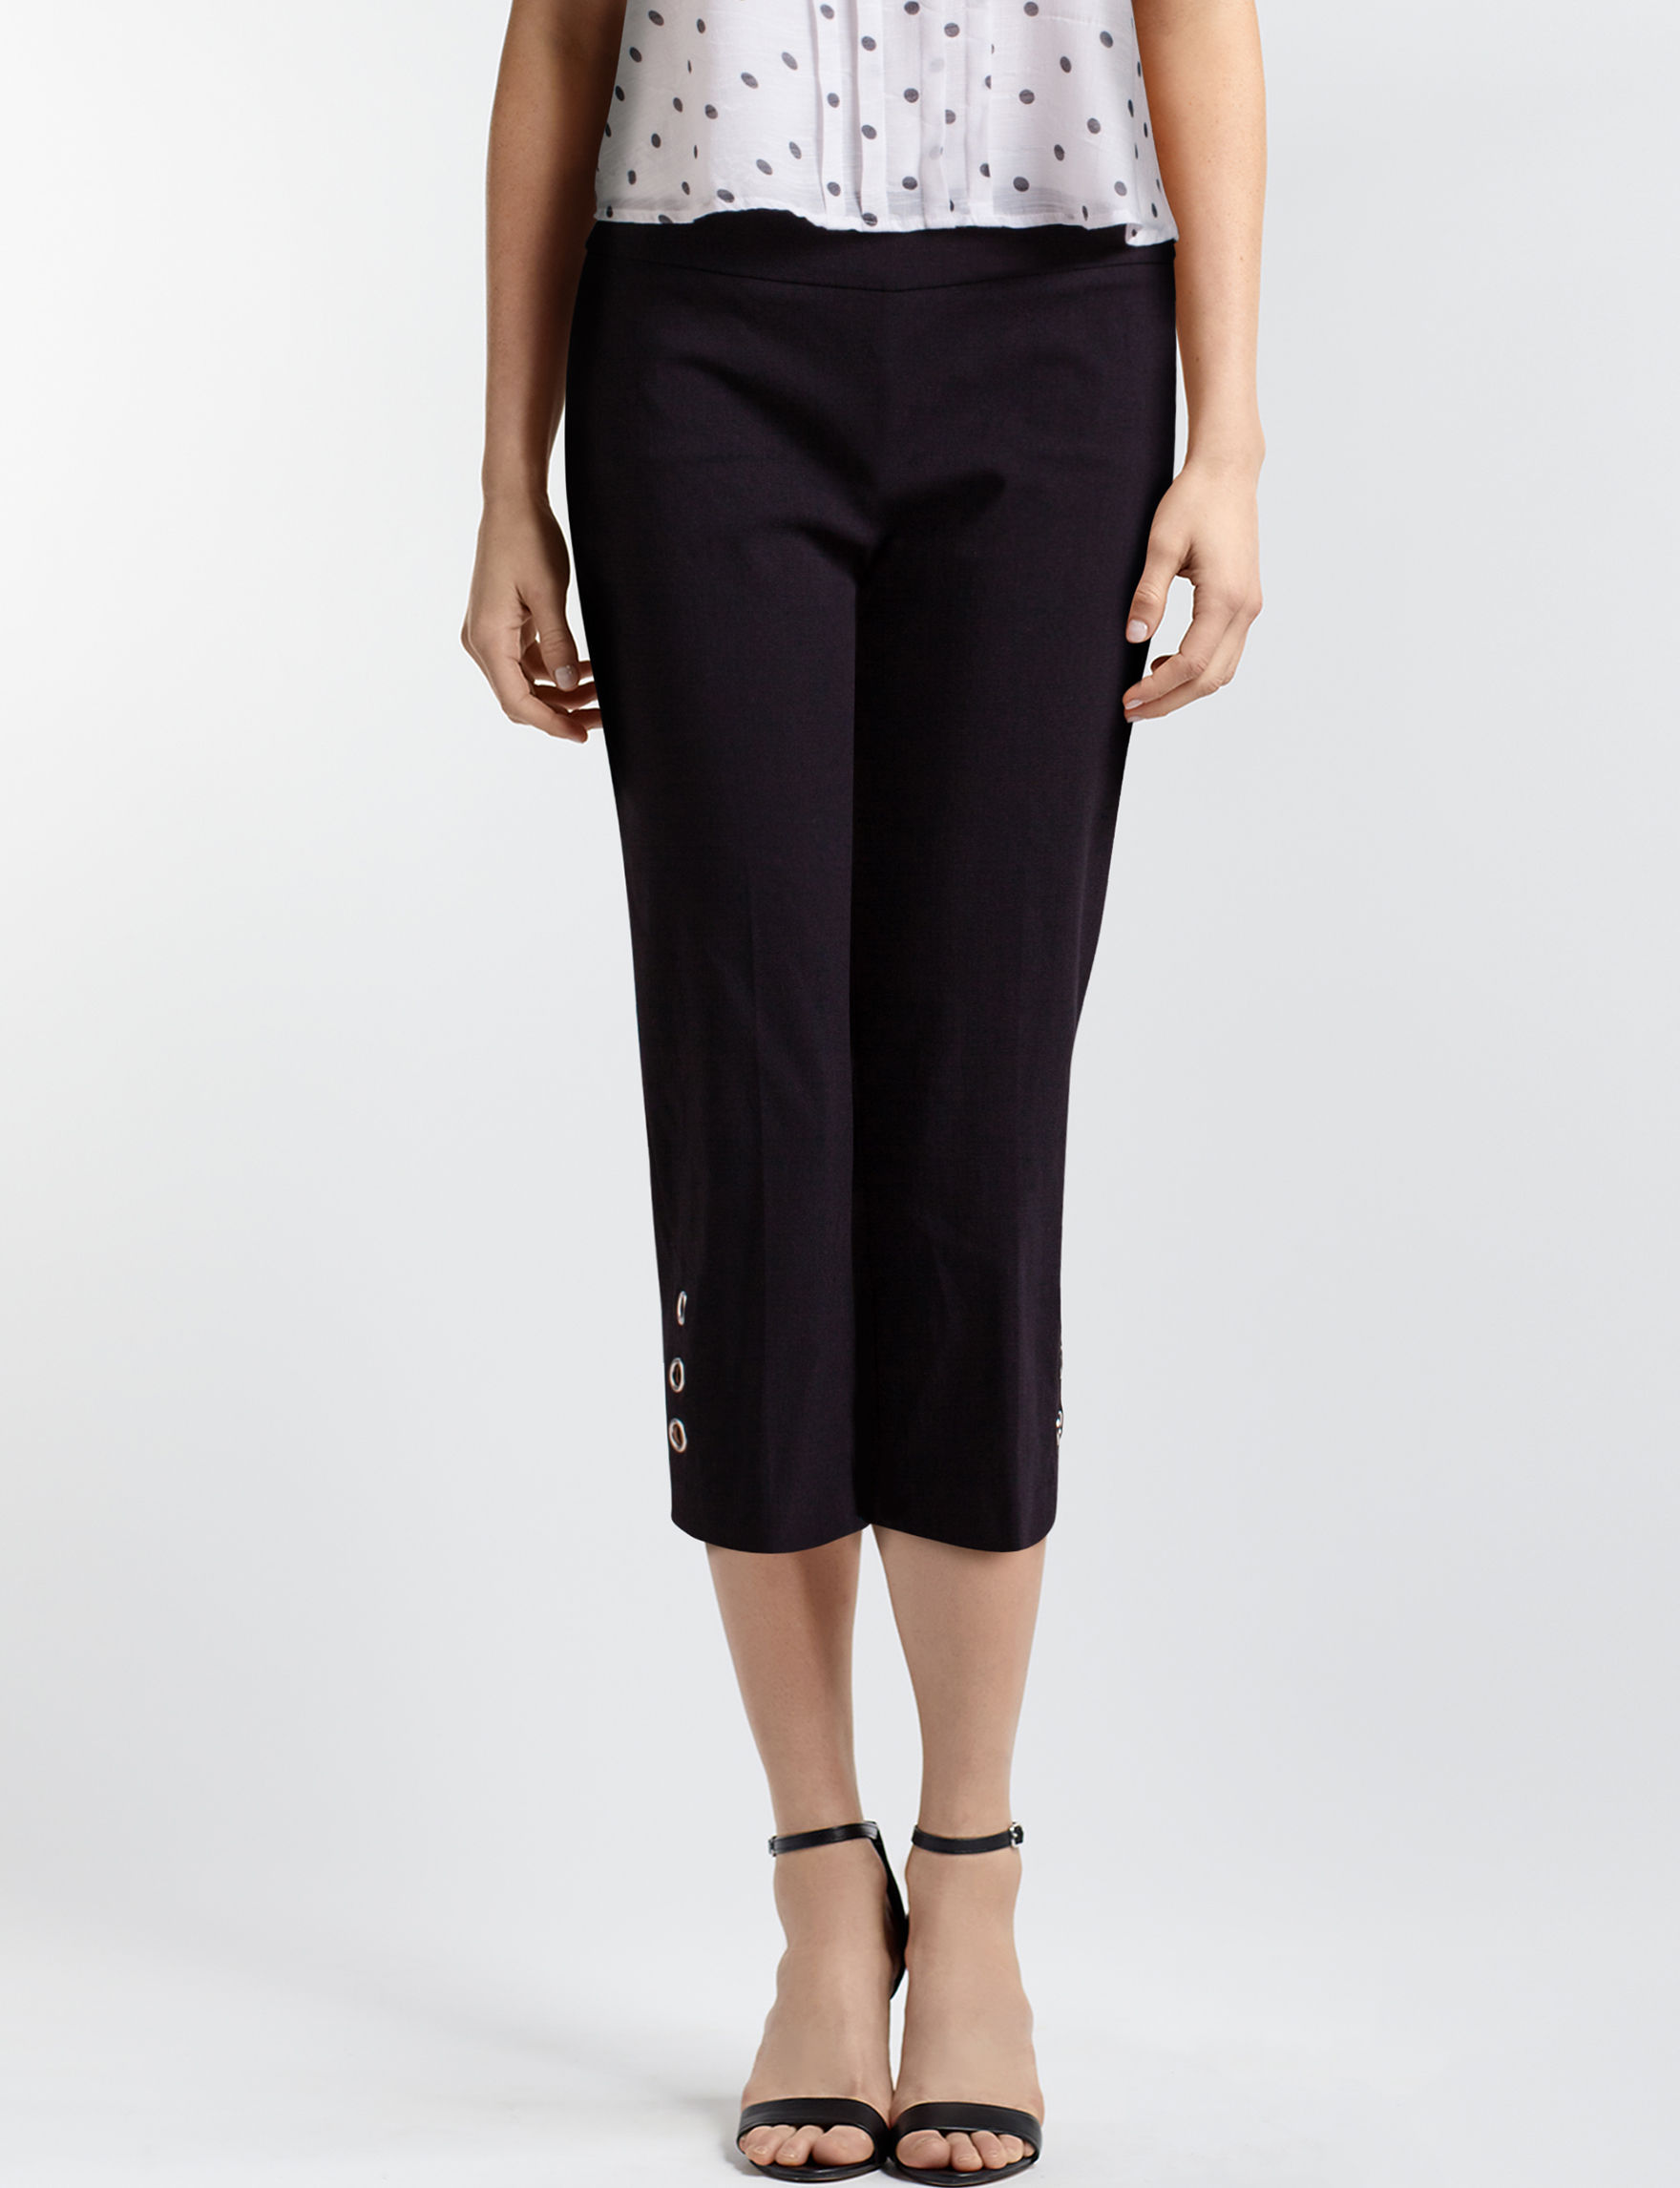 Zac & Rachel Black Capris & Crops Stretch